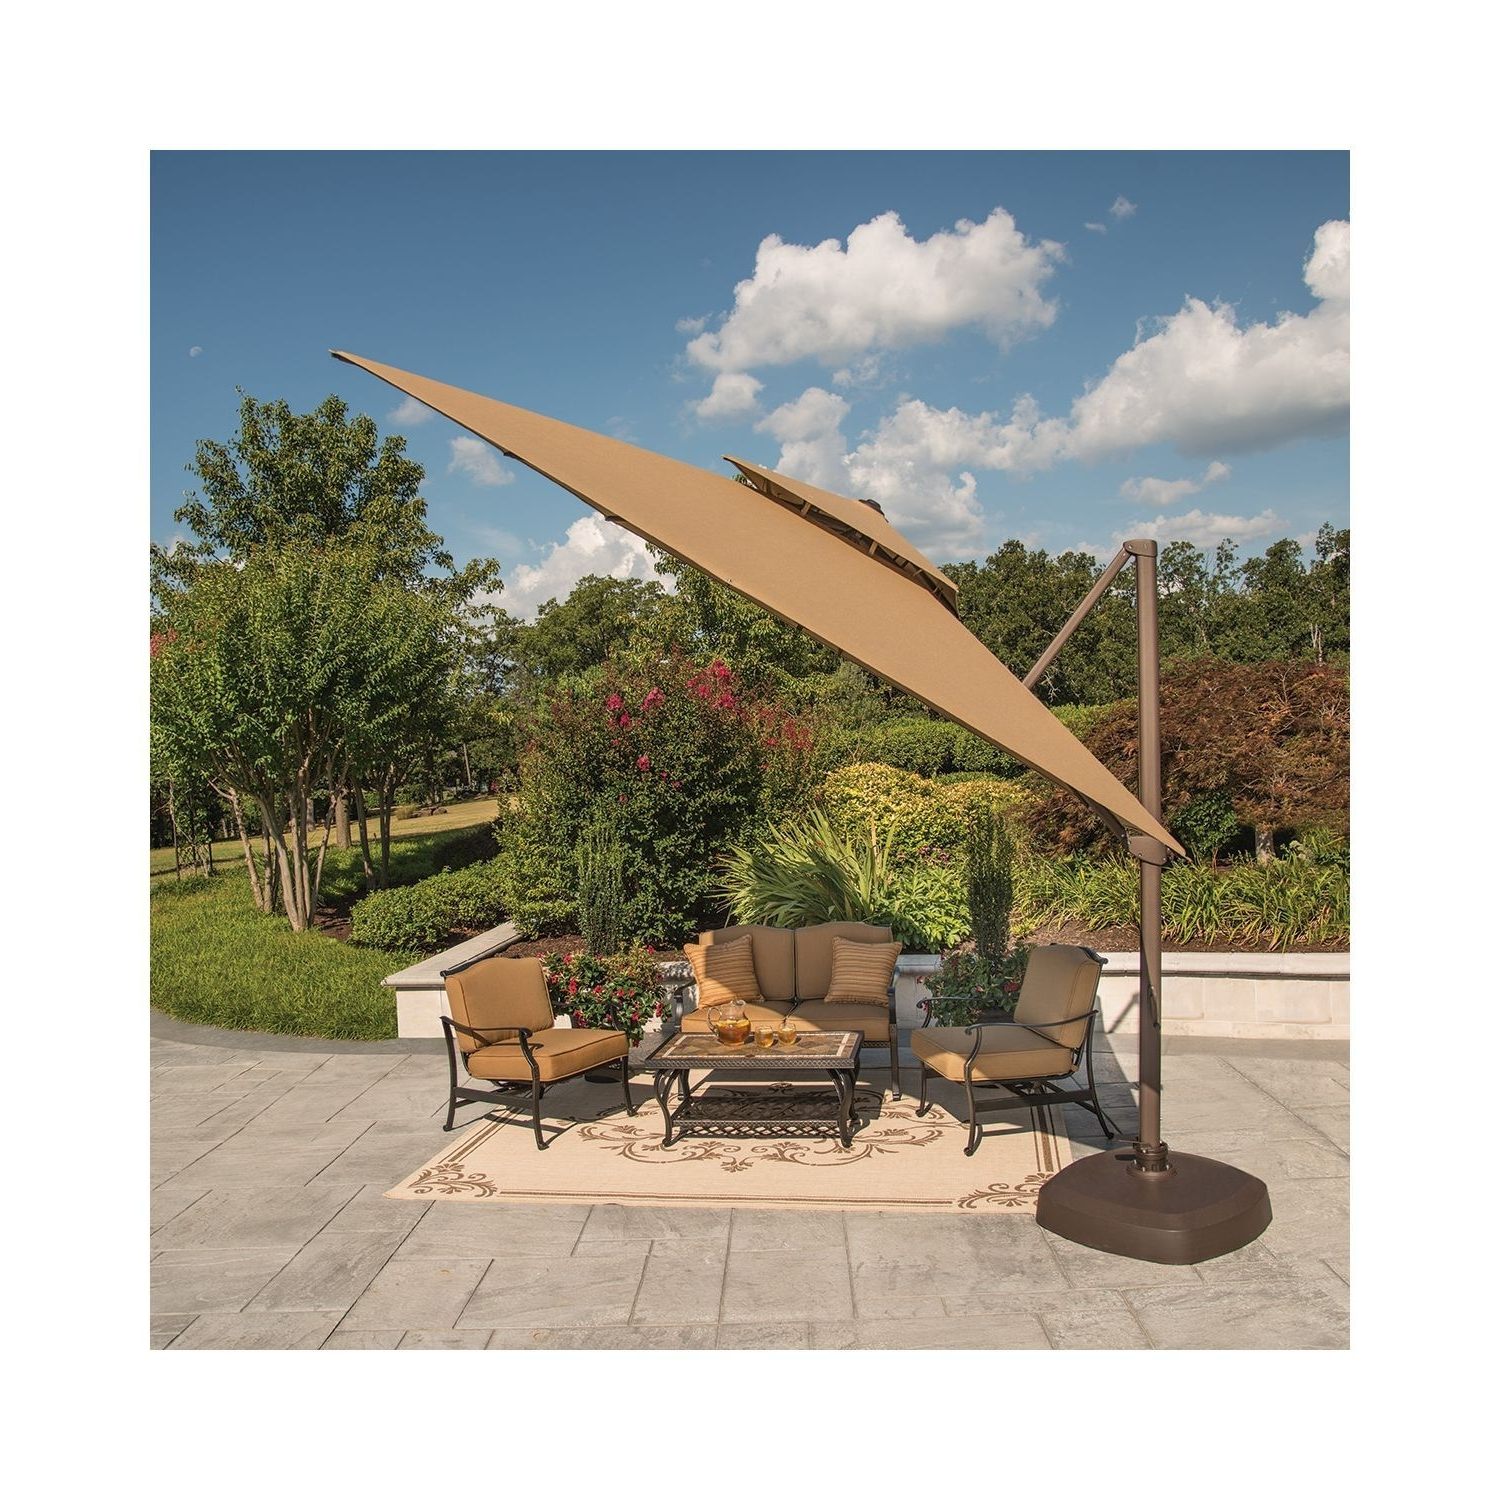 Sams Club Patio Umbrellas Within Well Known Member's Mark® 10 Foot Square Cantilever Umbrella With Premium (View 3 of 20)